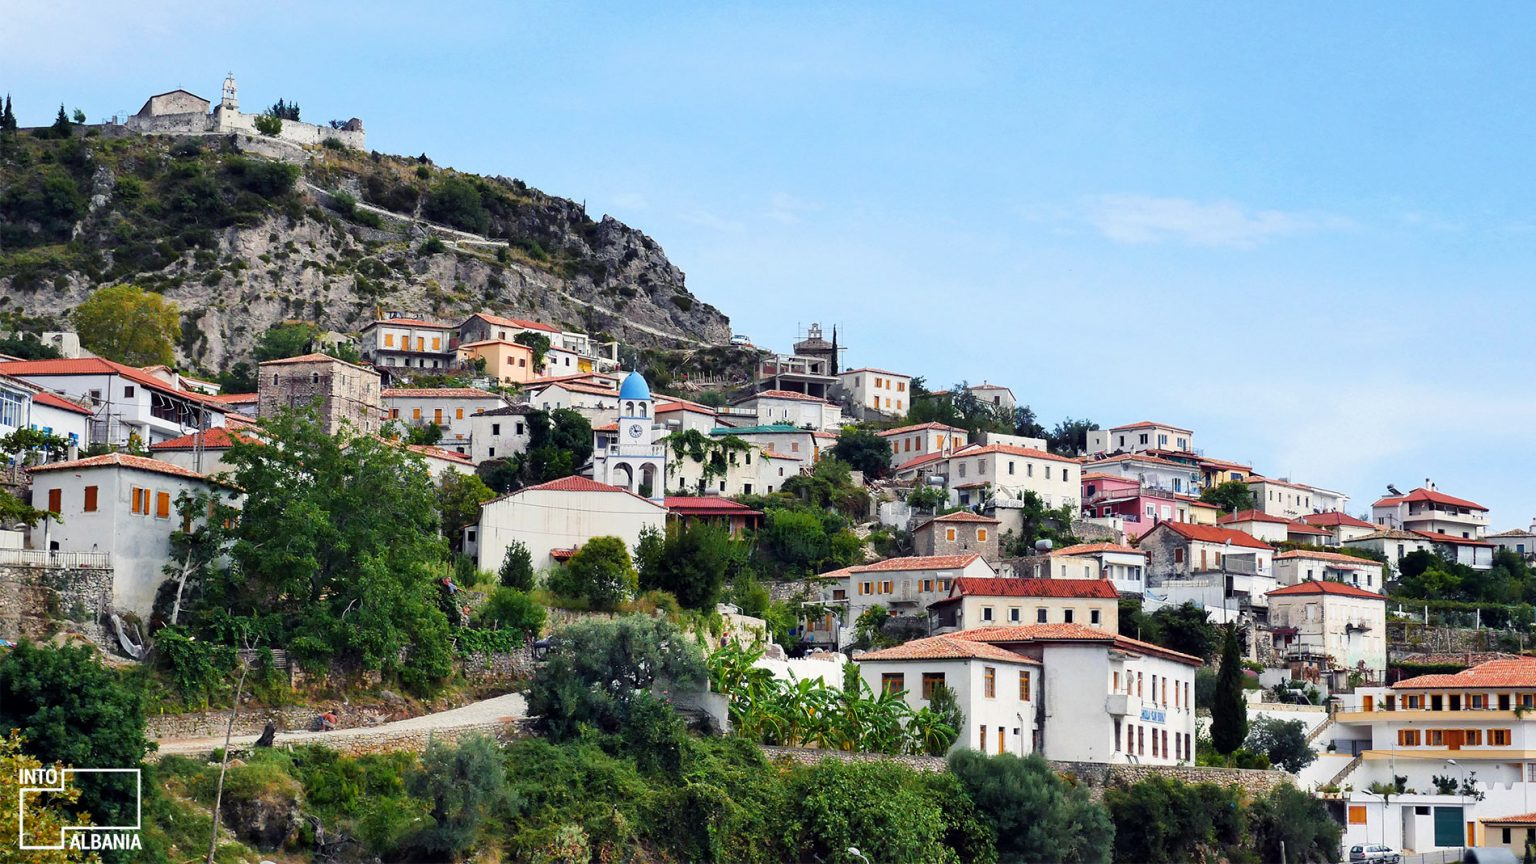 Dhërmi Village, Vlora, photo by IntoAlbania